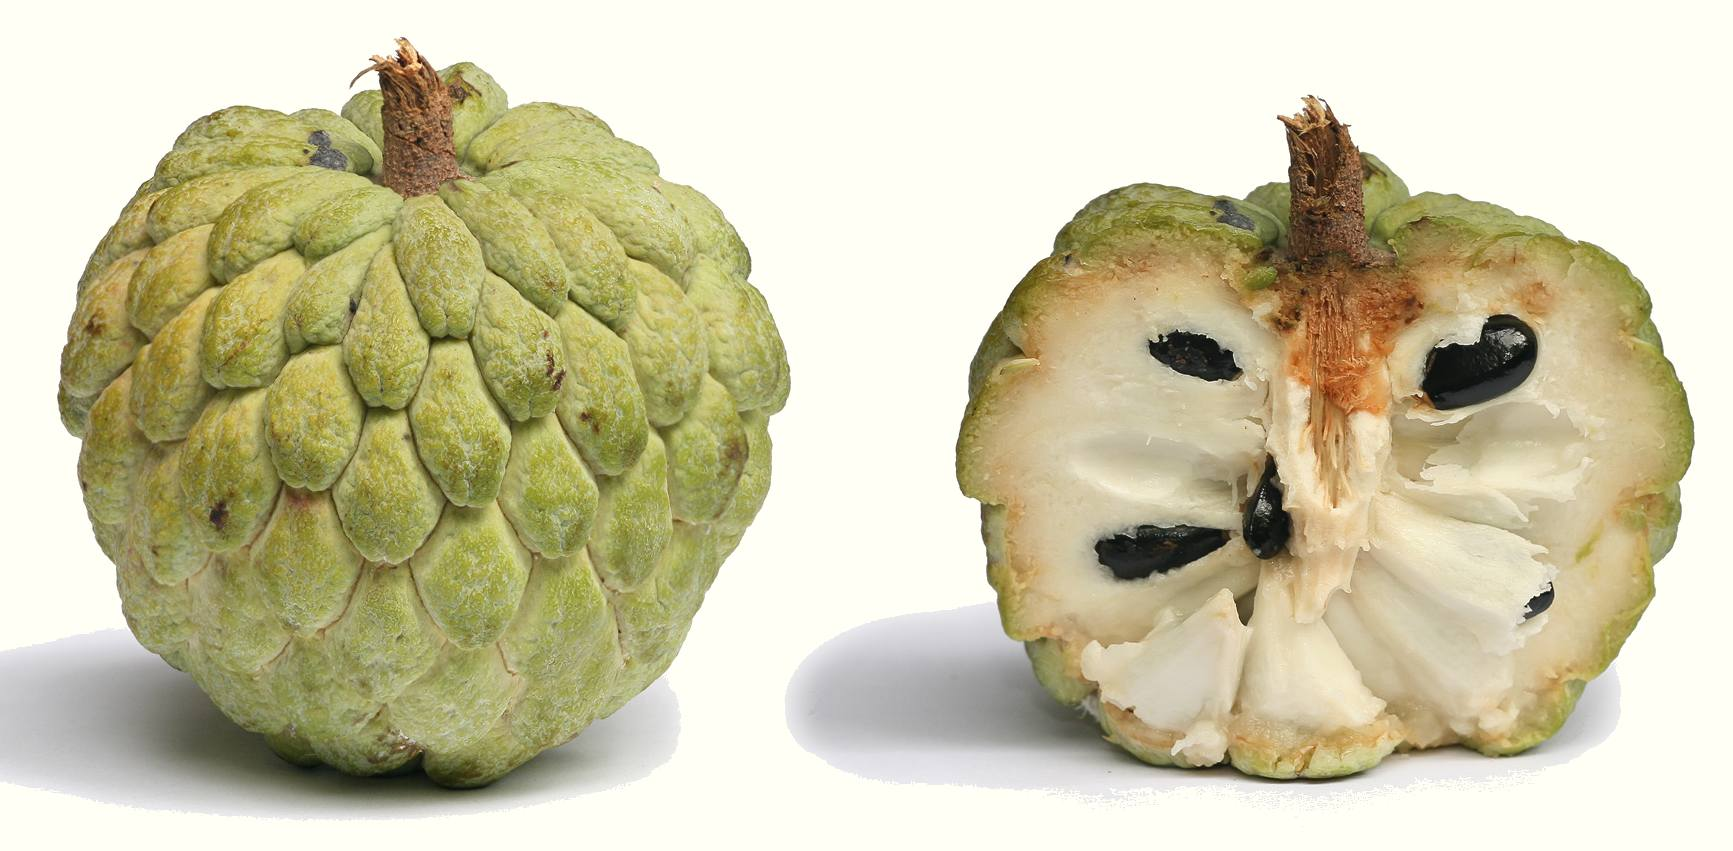 jamaican custard apple - photo #9